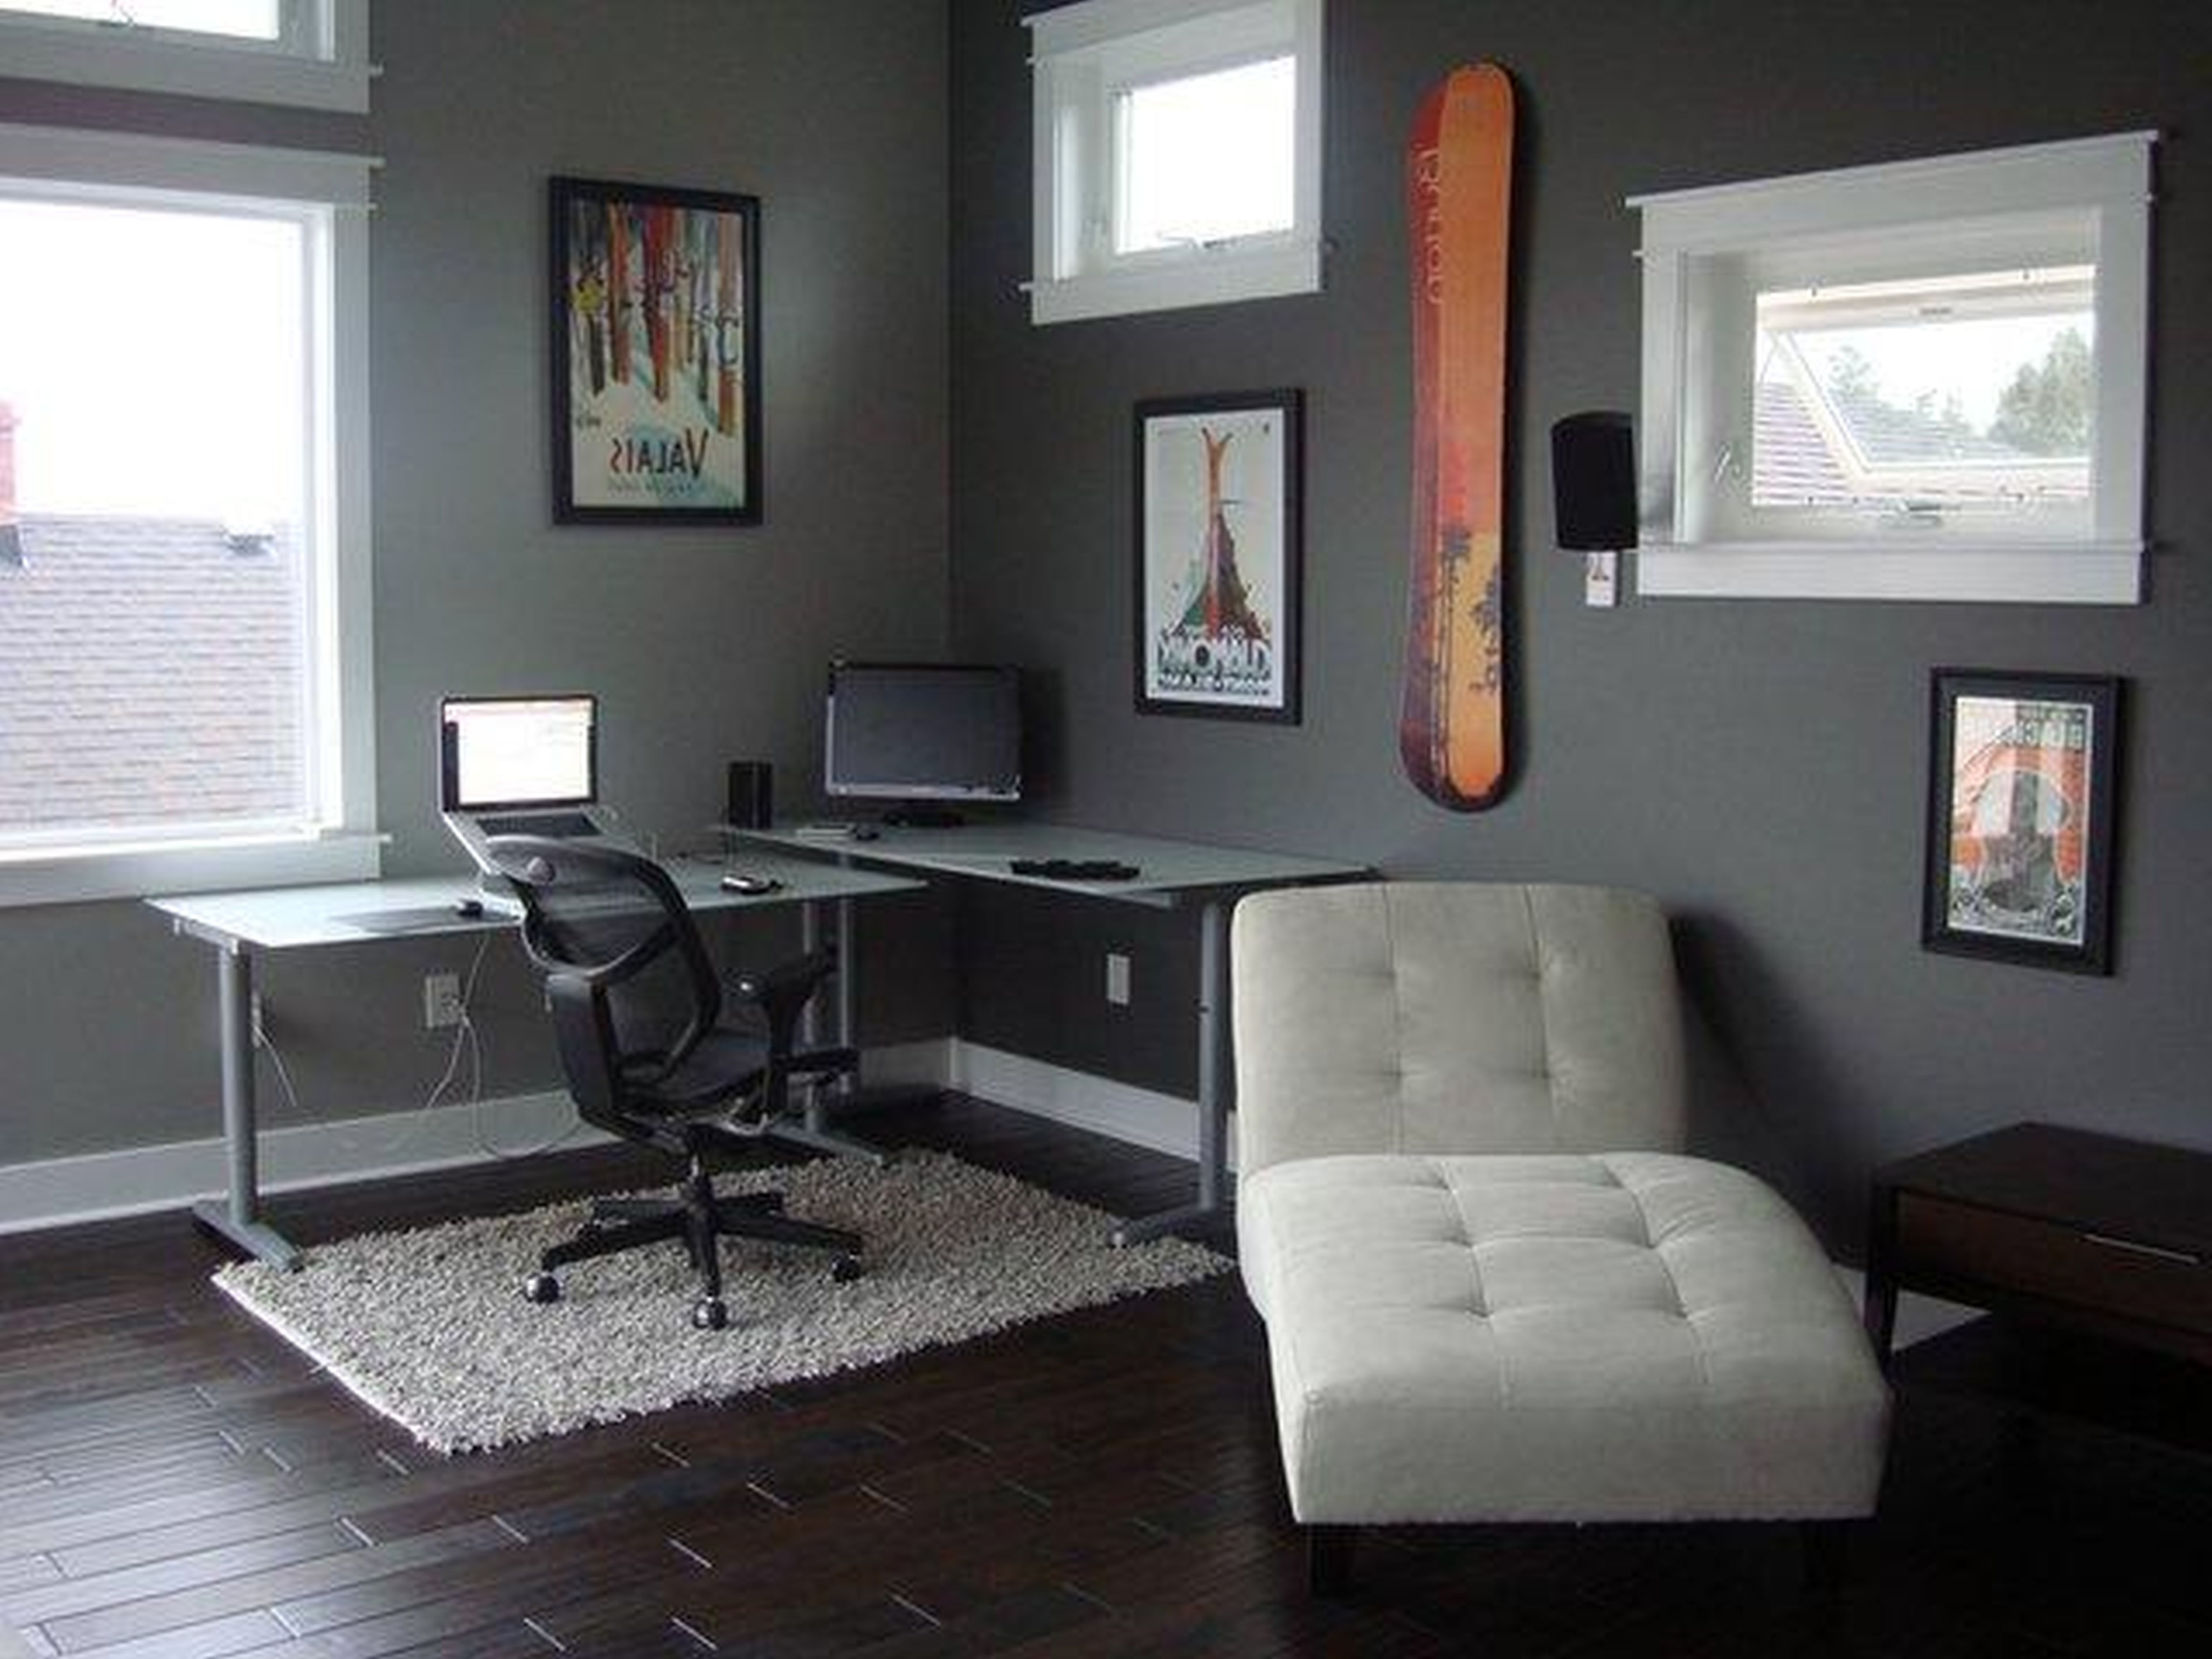 Amazing Grey Office Study Room With Glass Windows Suitable Desk Black Chair And White Rug Impressive Home Office Design Small Room Design Home Decor Bedroom